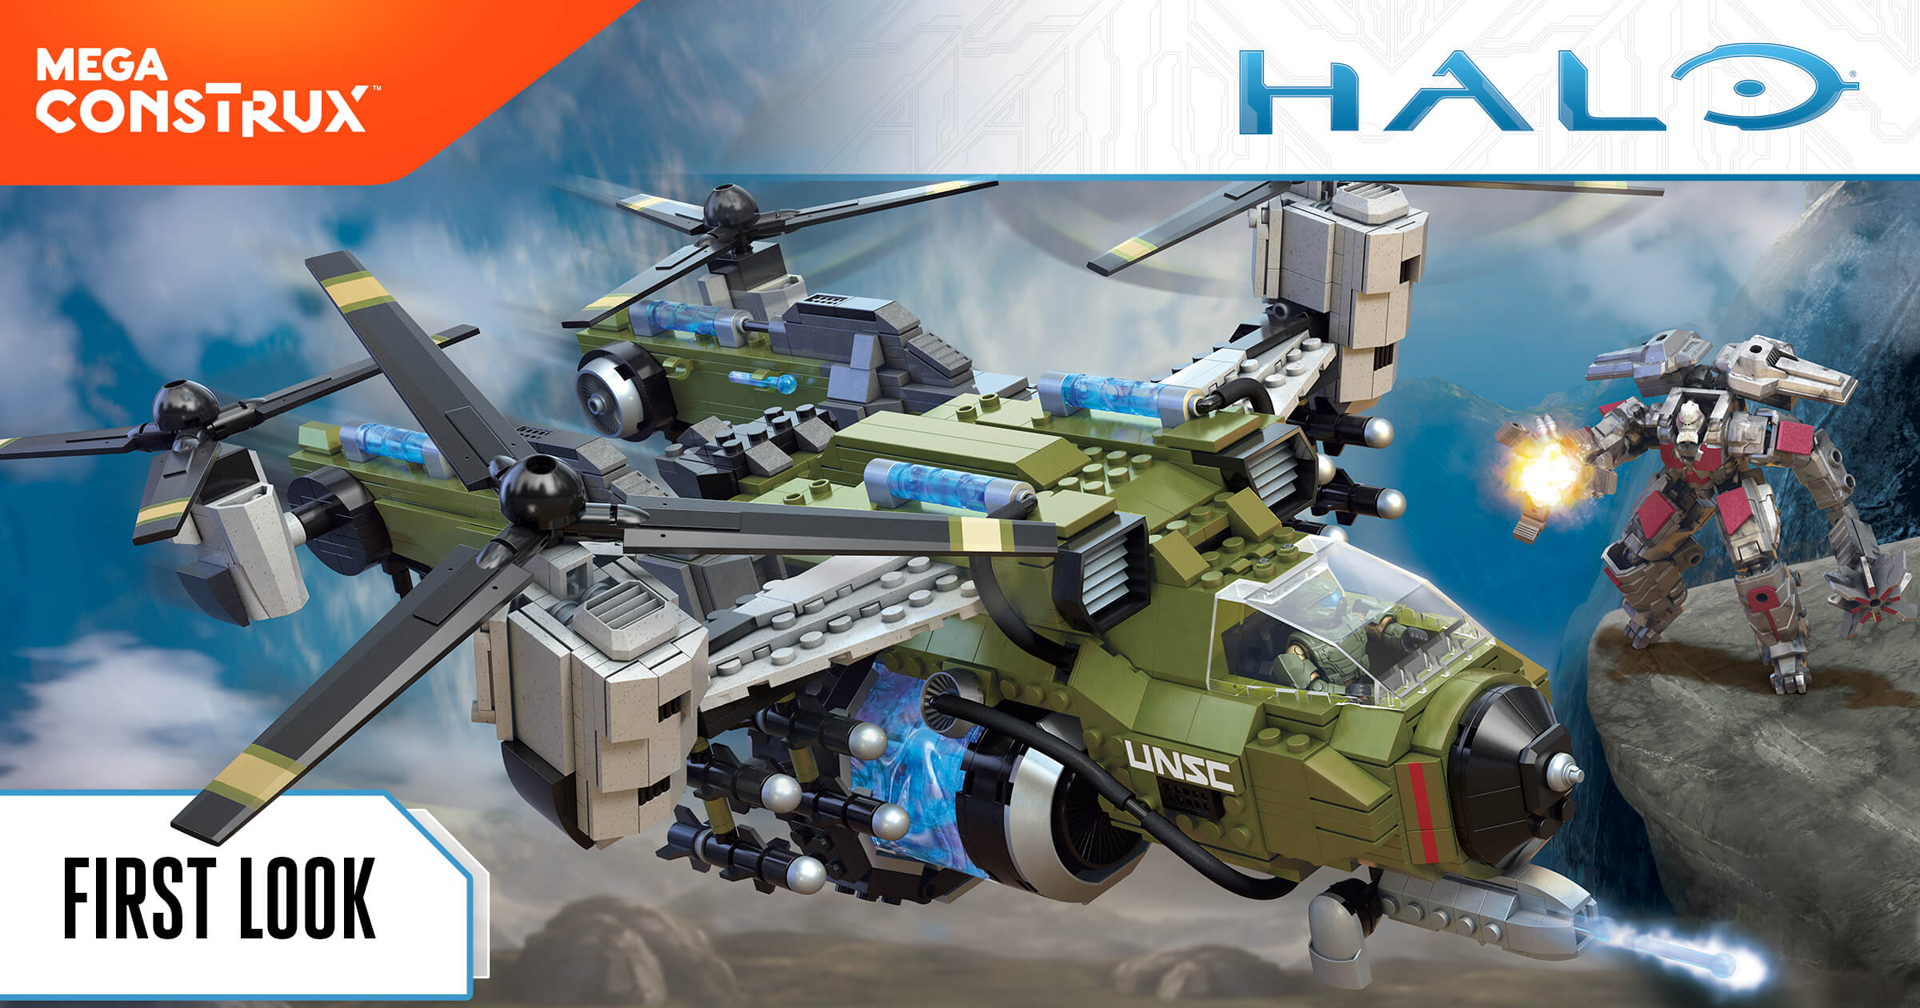 Mega Construx @ Toy Fair 2018 | Halo Gear | Halo - Official Site